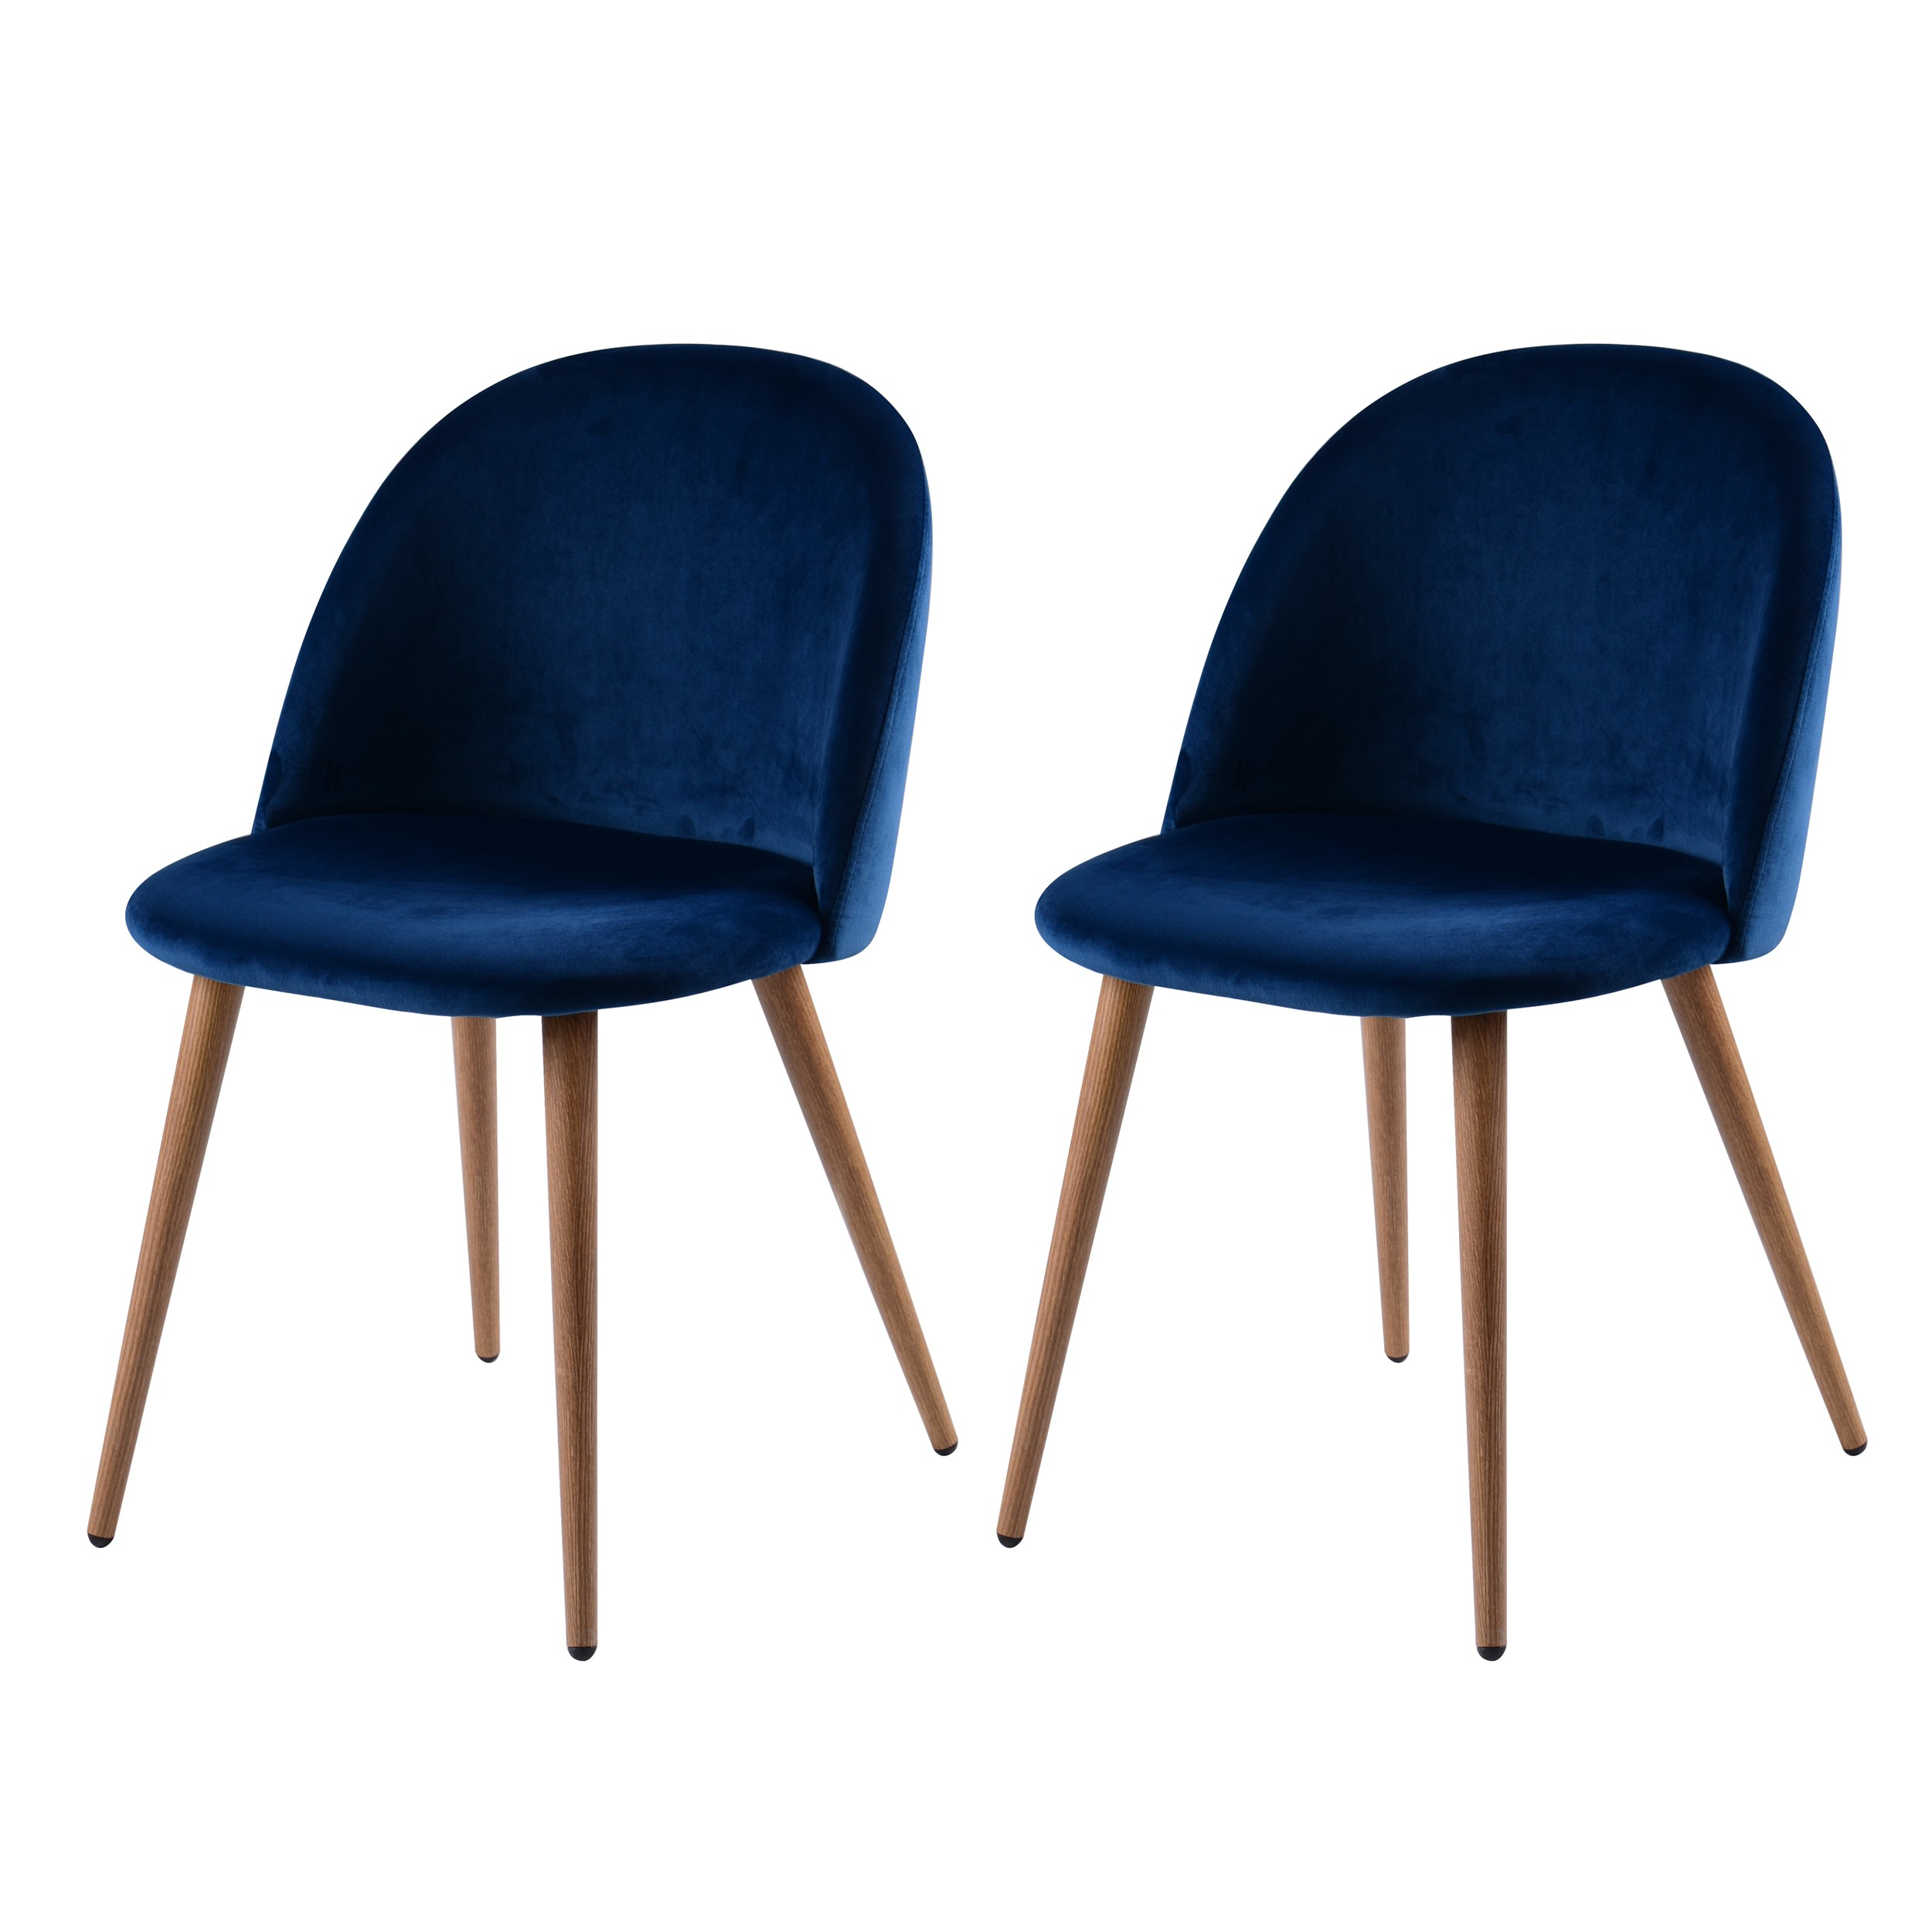 Chaise cozy en velours bleu lot de 2 commandez les for Chaise scandinave bleu